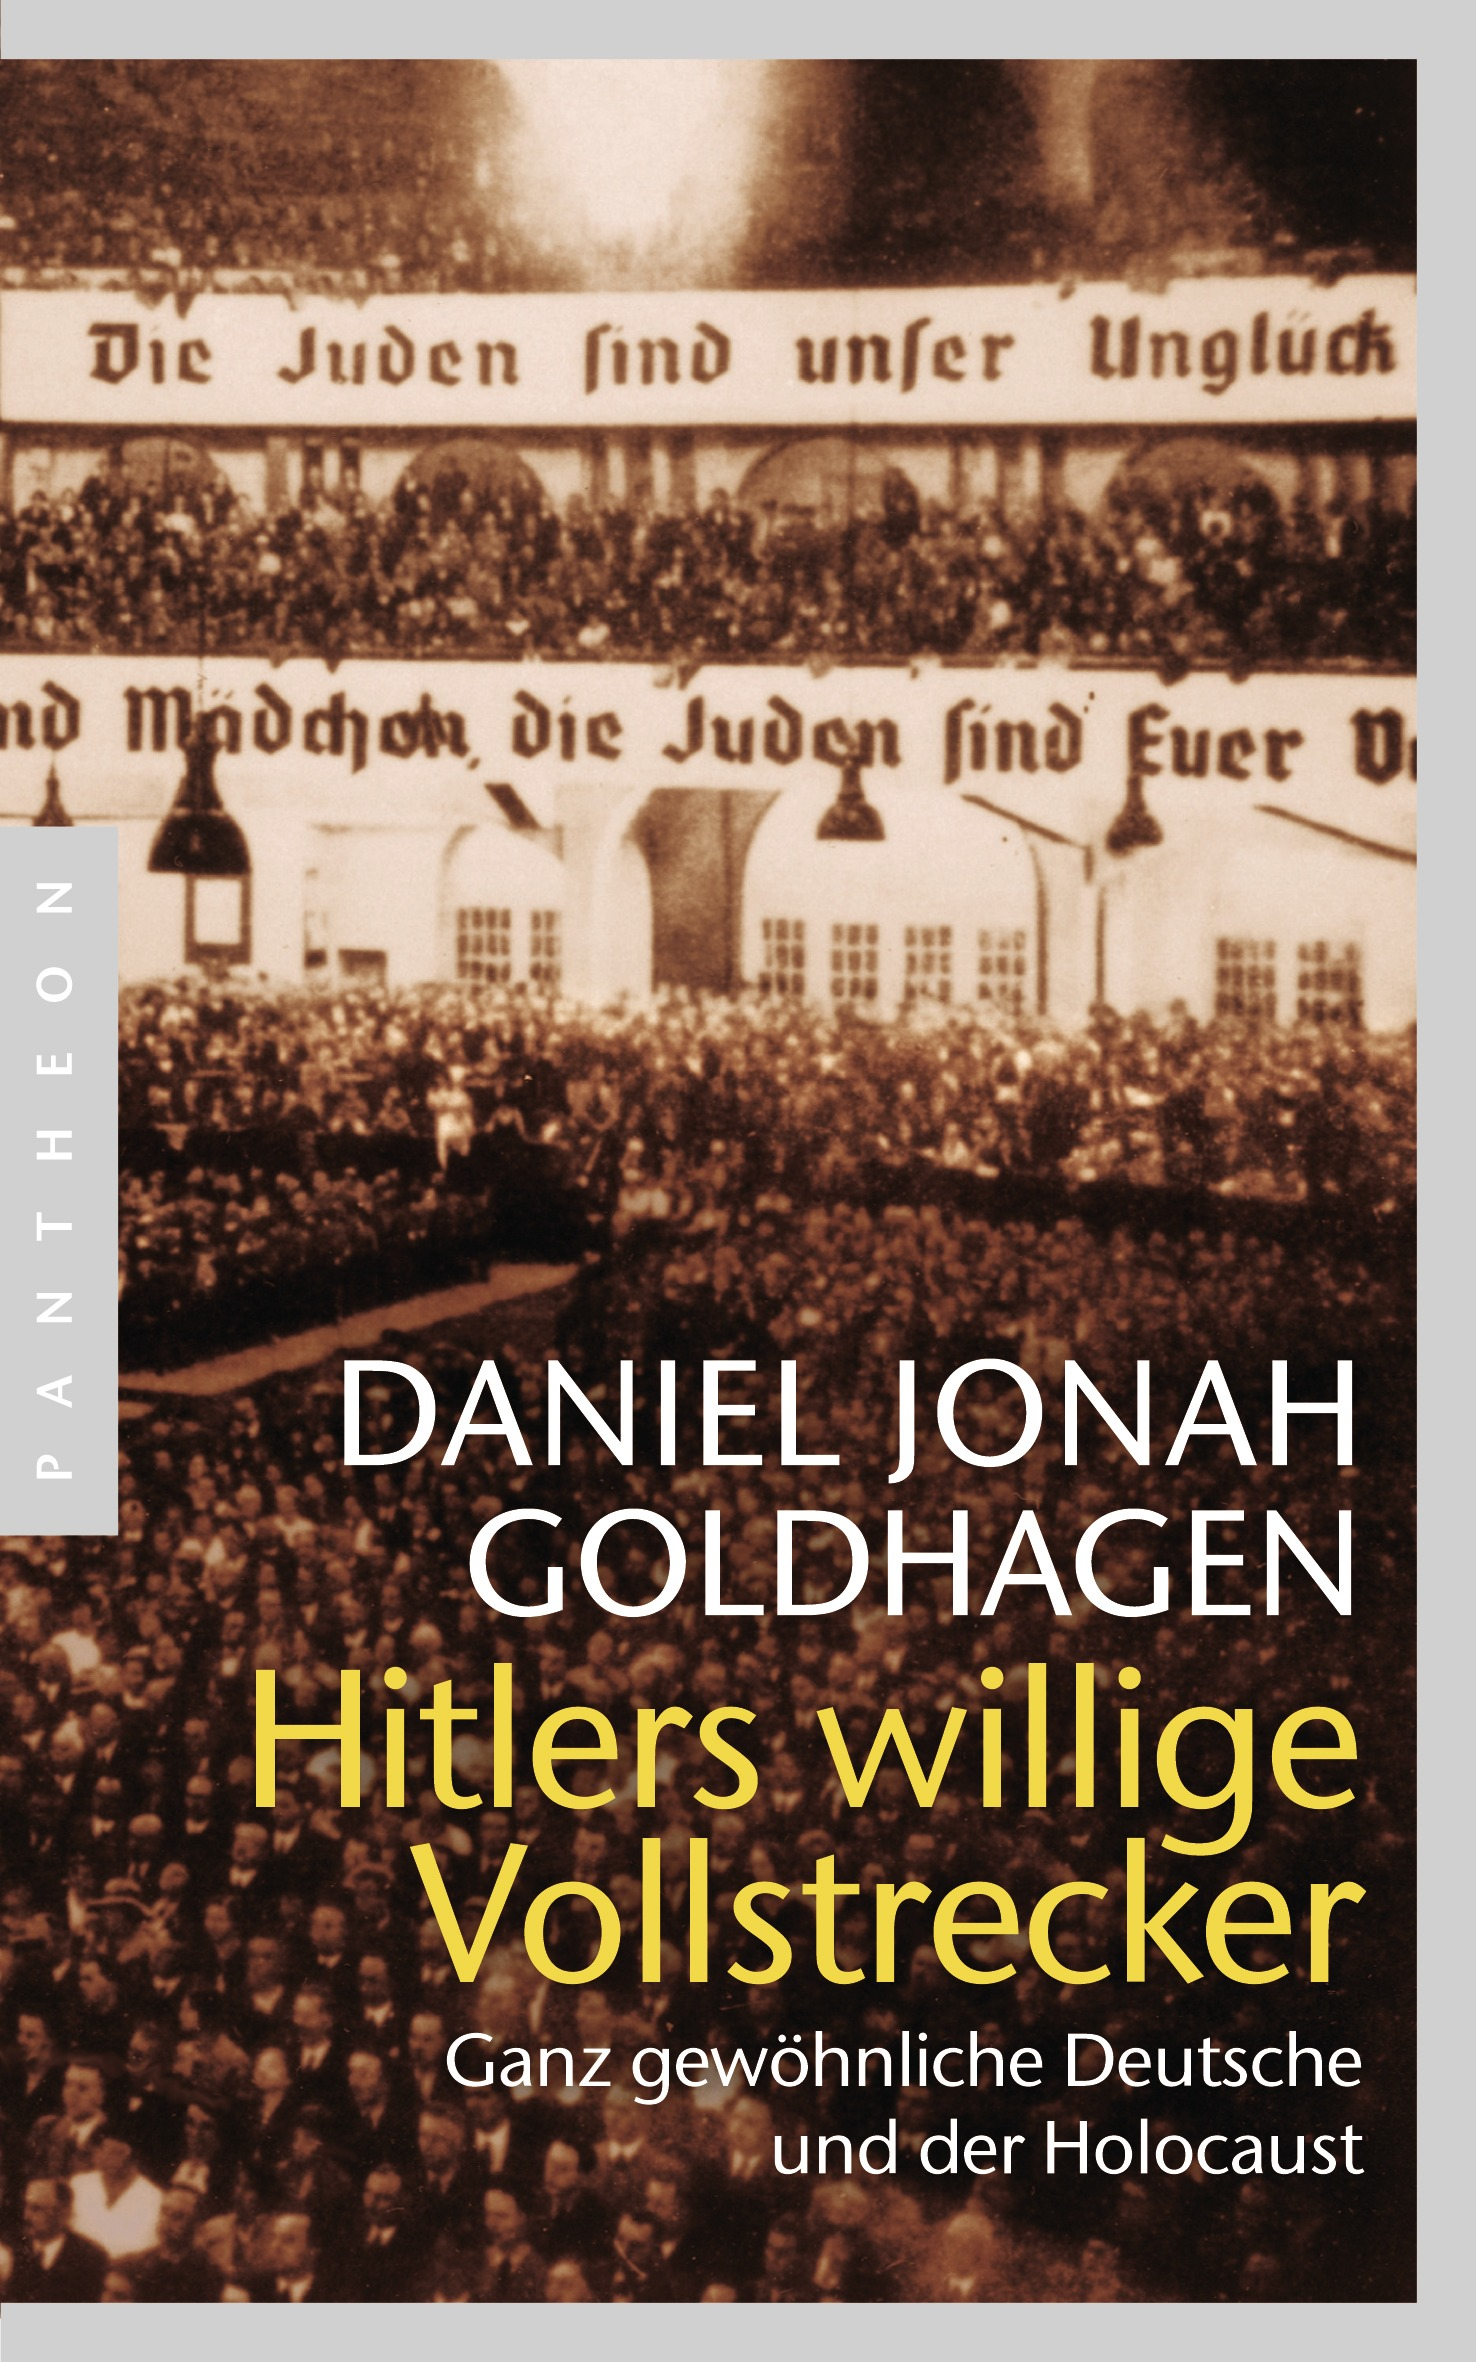 Goldhagen thesis holocaust